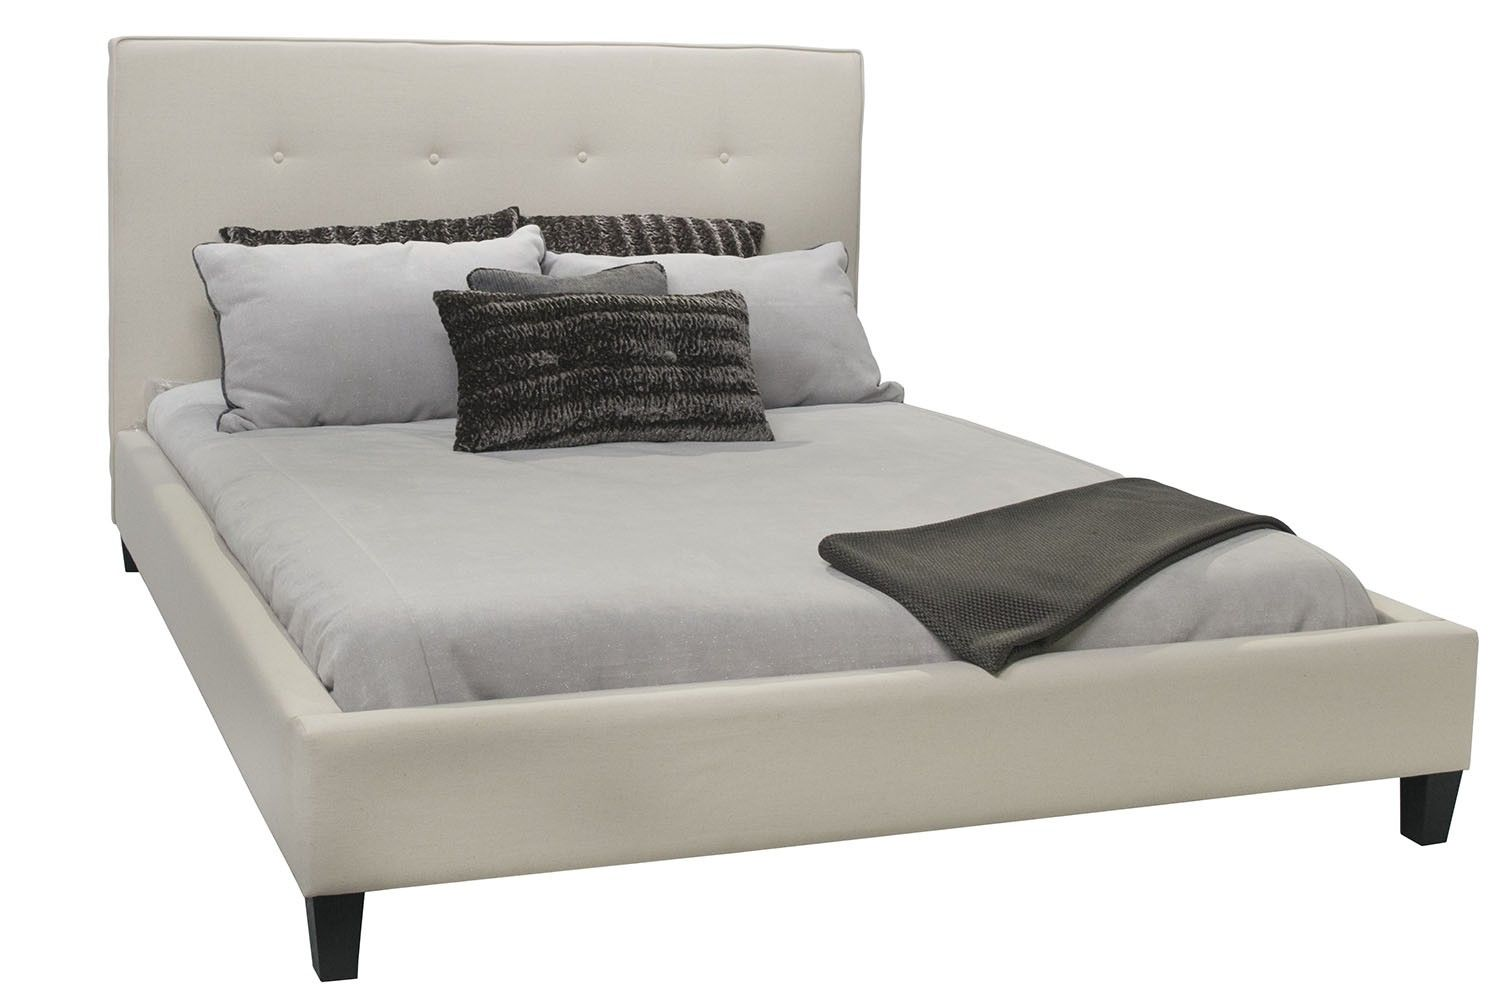 Best Mid Century Modern Queen Bed Media Image 1 200 Might Be 640 x 480